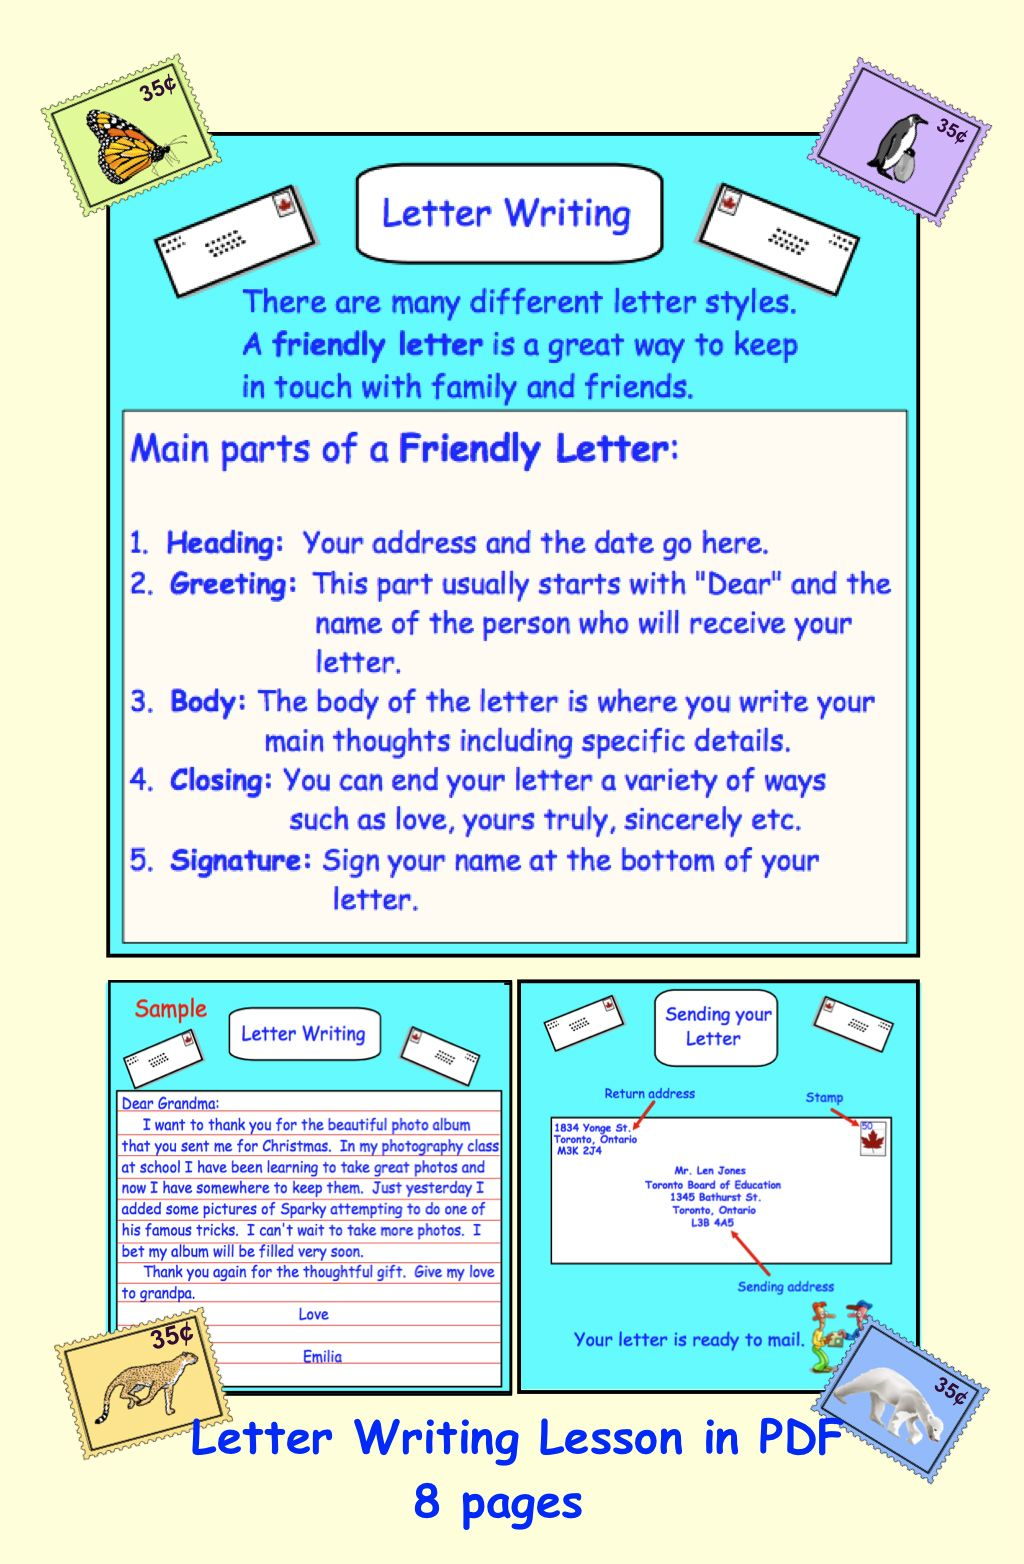 Letter writing friendlybusiness pdf writing lessons pdf and letter writing friendlybusiness pdf spiritdancerdesigns